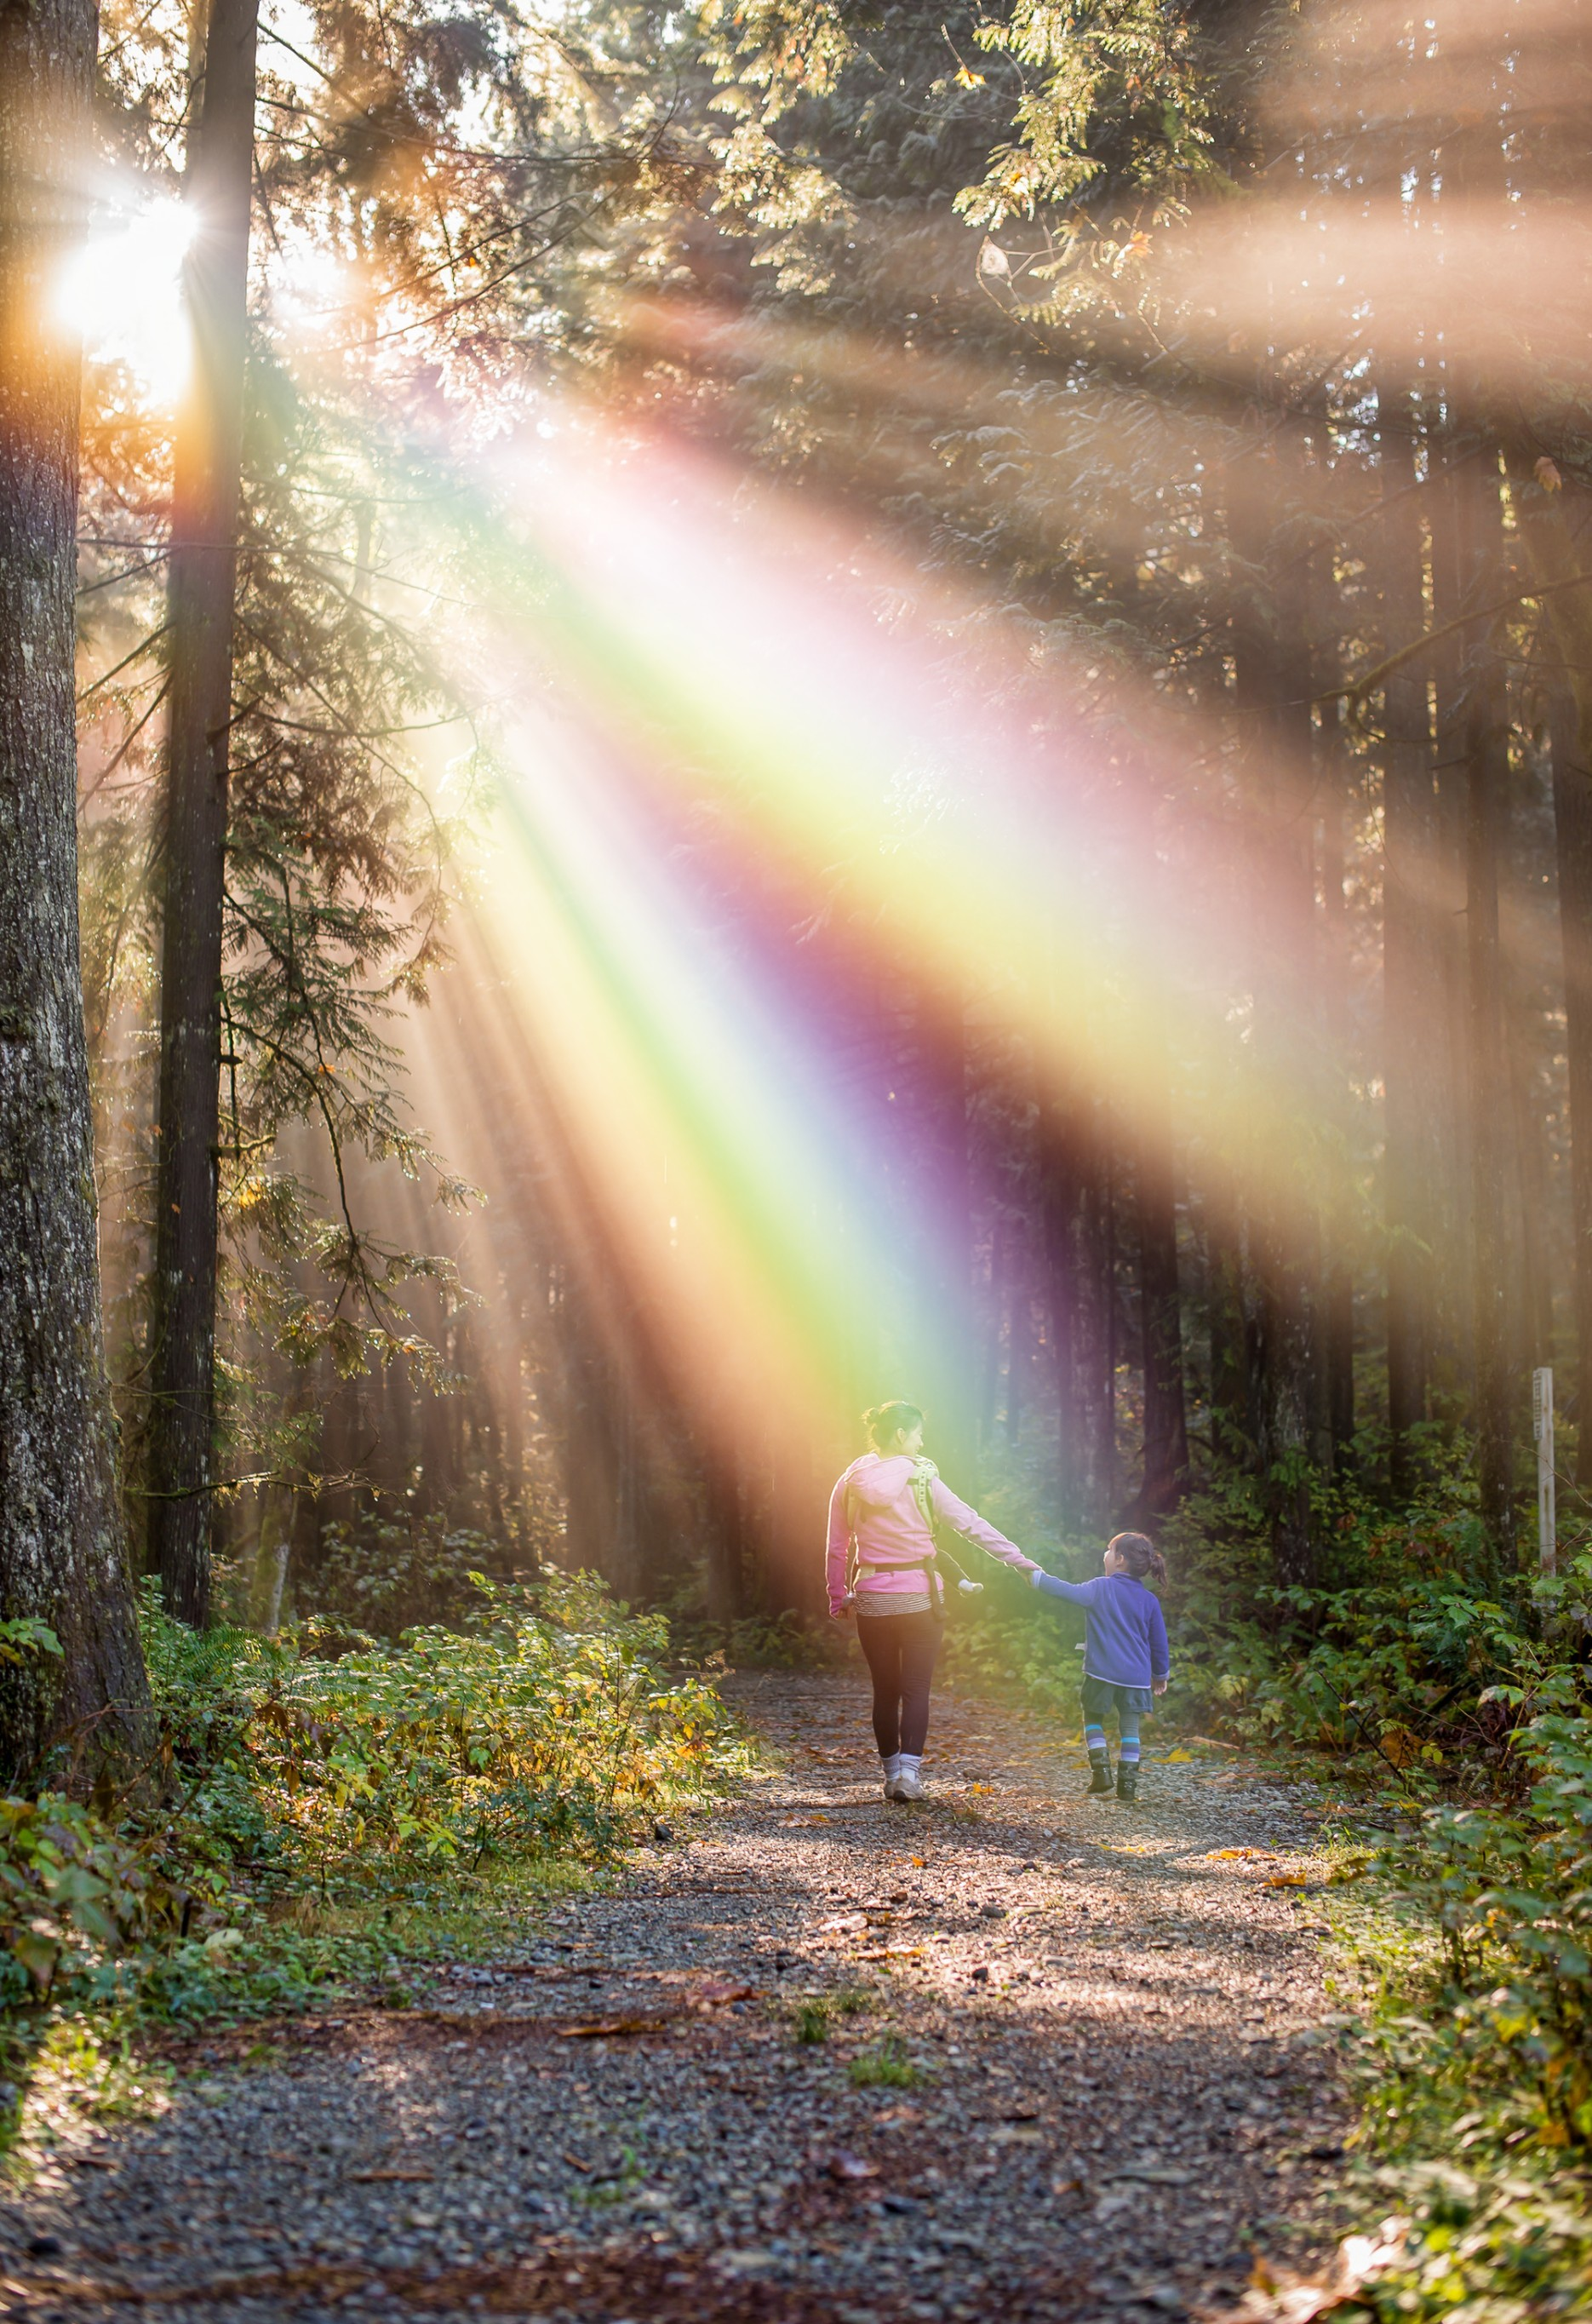 #freetoedit #mother #girl #family #rainbow #morning #sun #forest #amazing #love #nature #remixed from @freetoedit